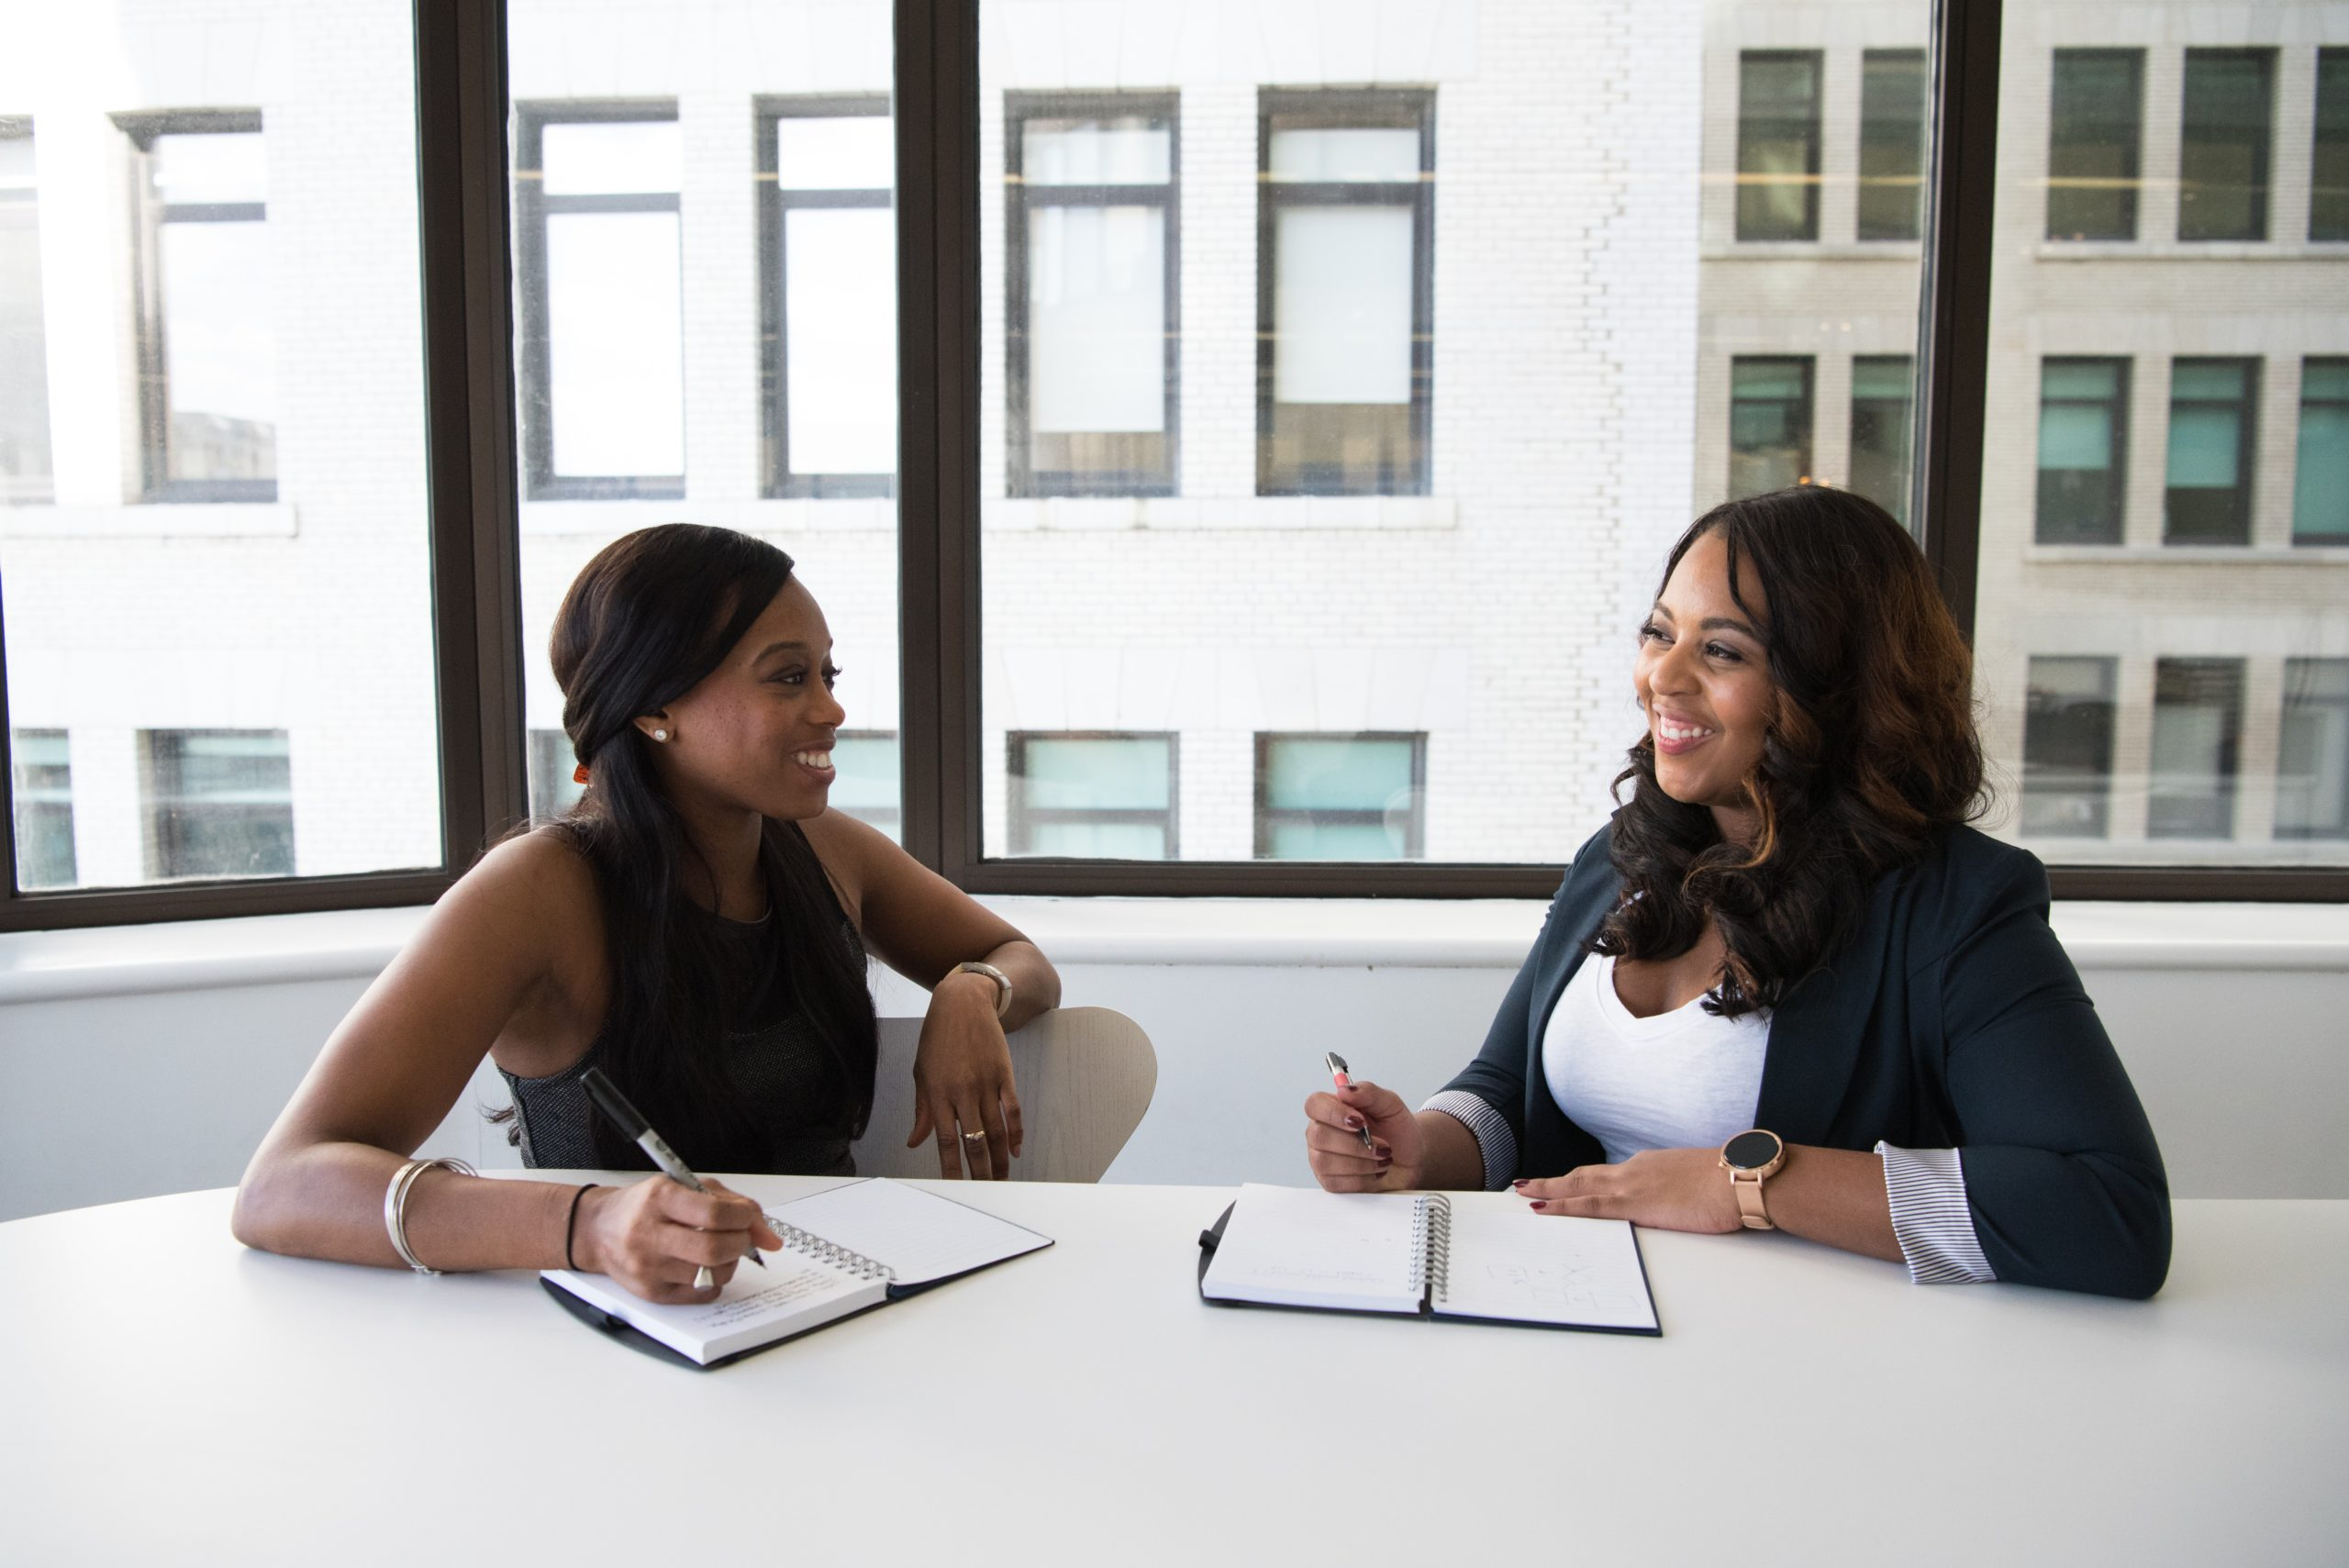 Two black women sitting and smiling in an office setting